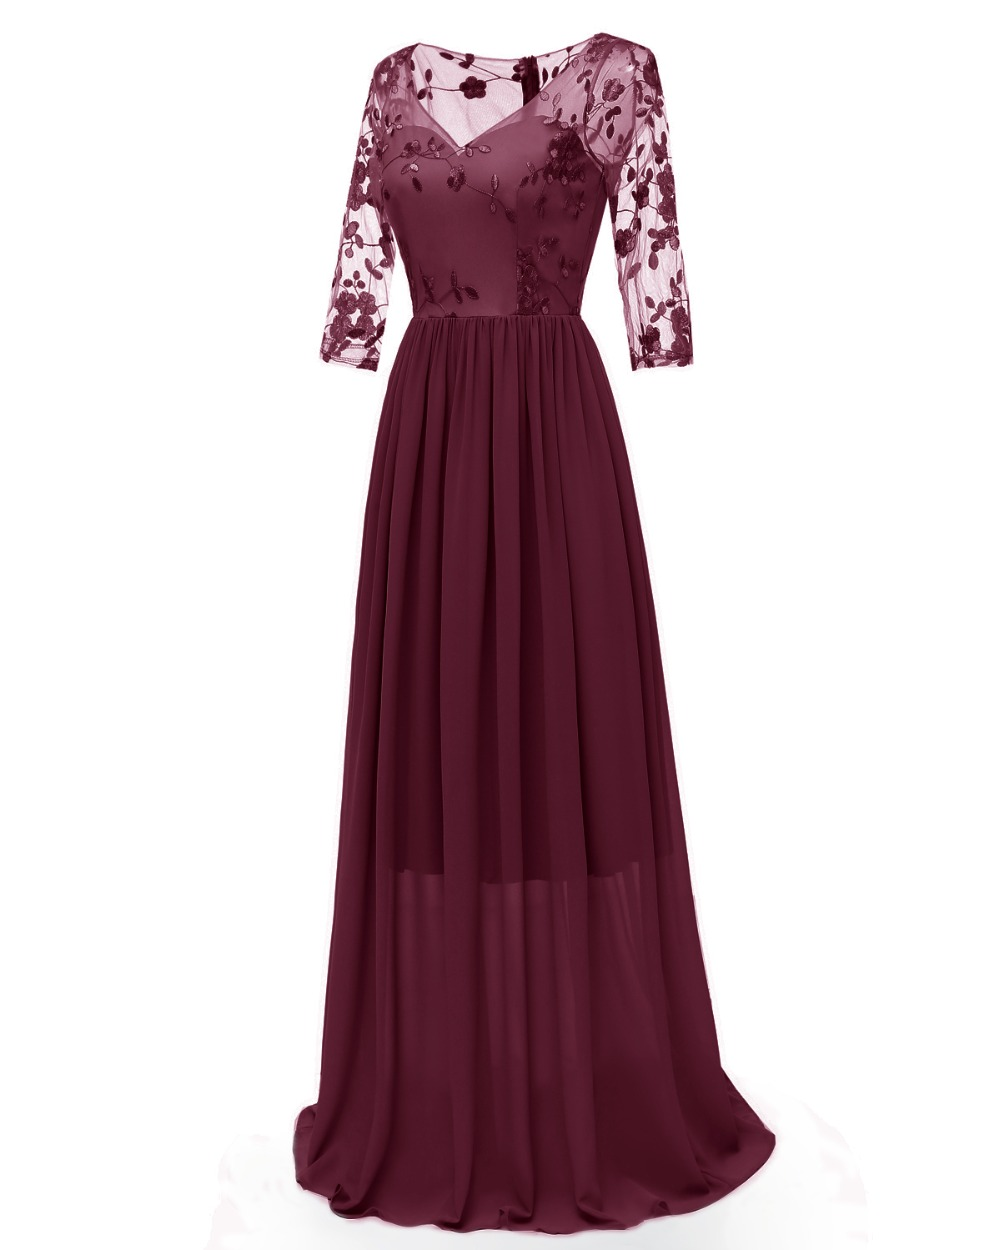 Women Floral Embroidery Lace Illusion Long Dress 3/4 Sleeve Sheer Back Maxi Dress Floor Length Formal Party Dress 4